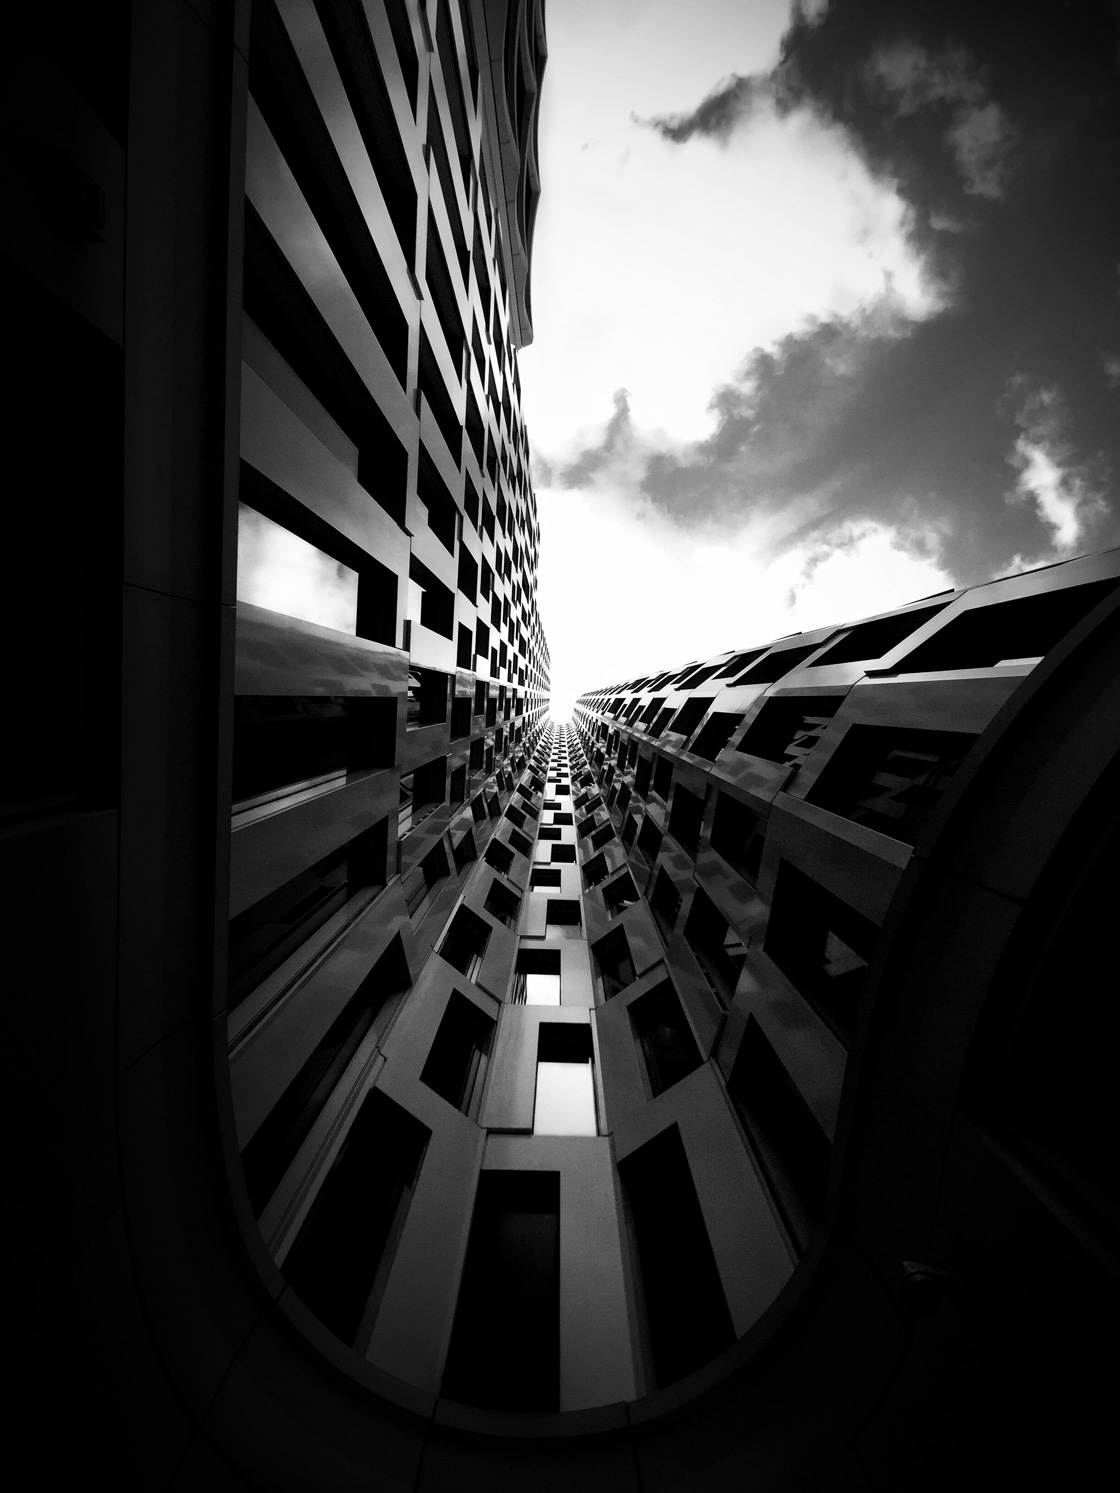 Black and white photography 24